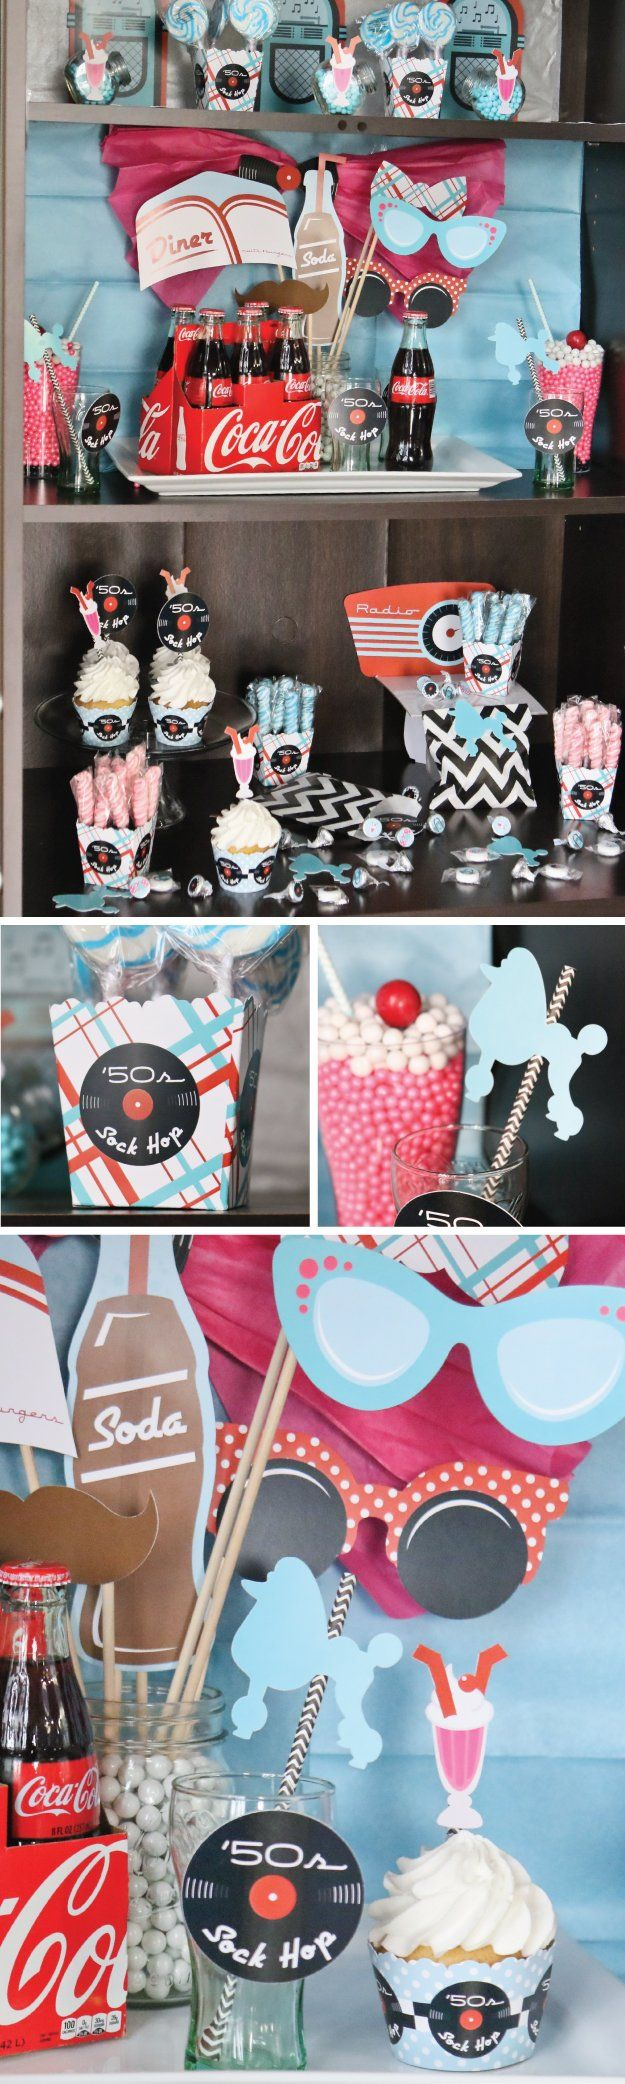 1950s Theme Party Ideas - Fifties Sock Hop Decorations and Diner Supplies from BigDotOfHappiness.com